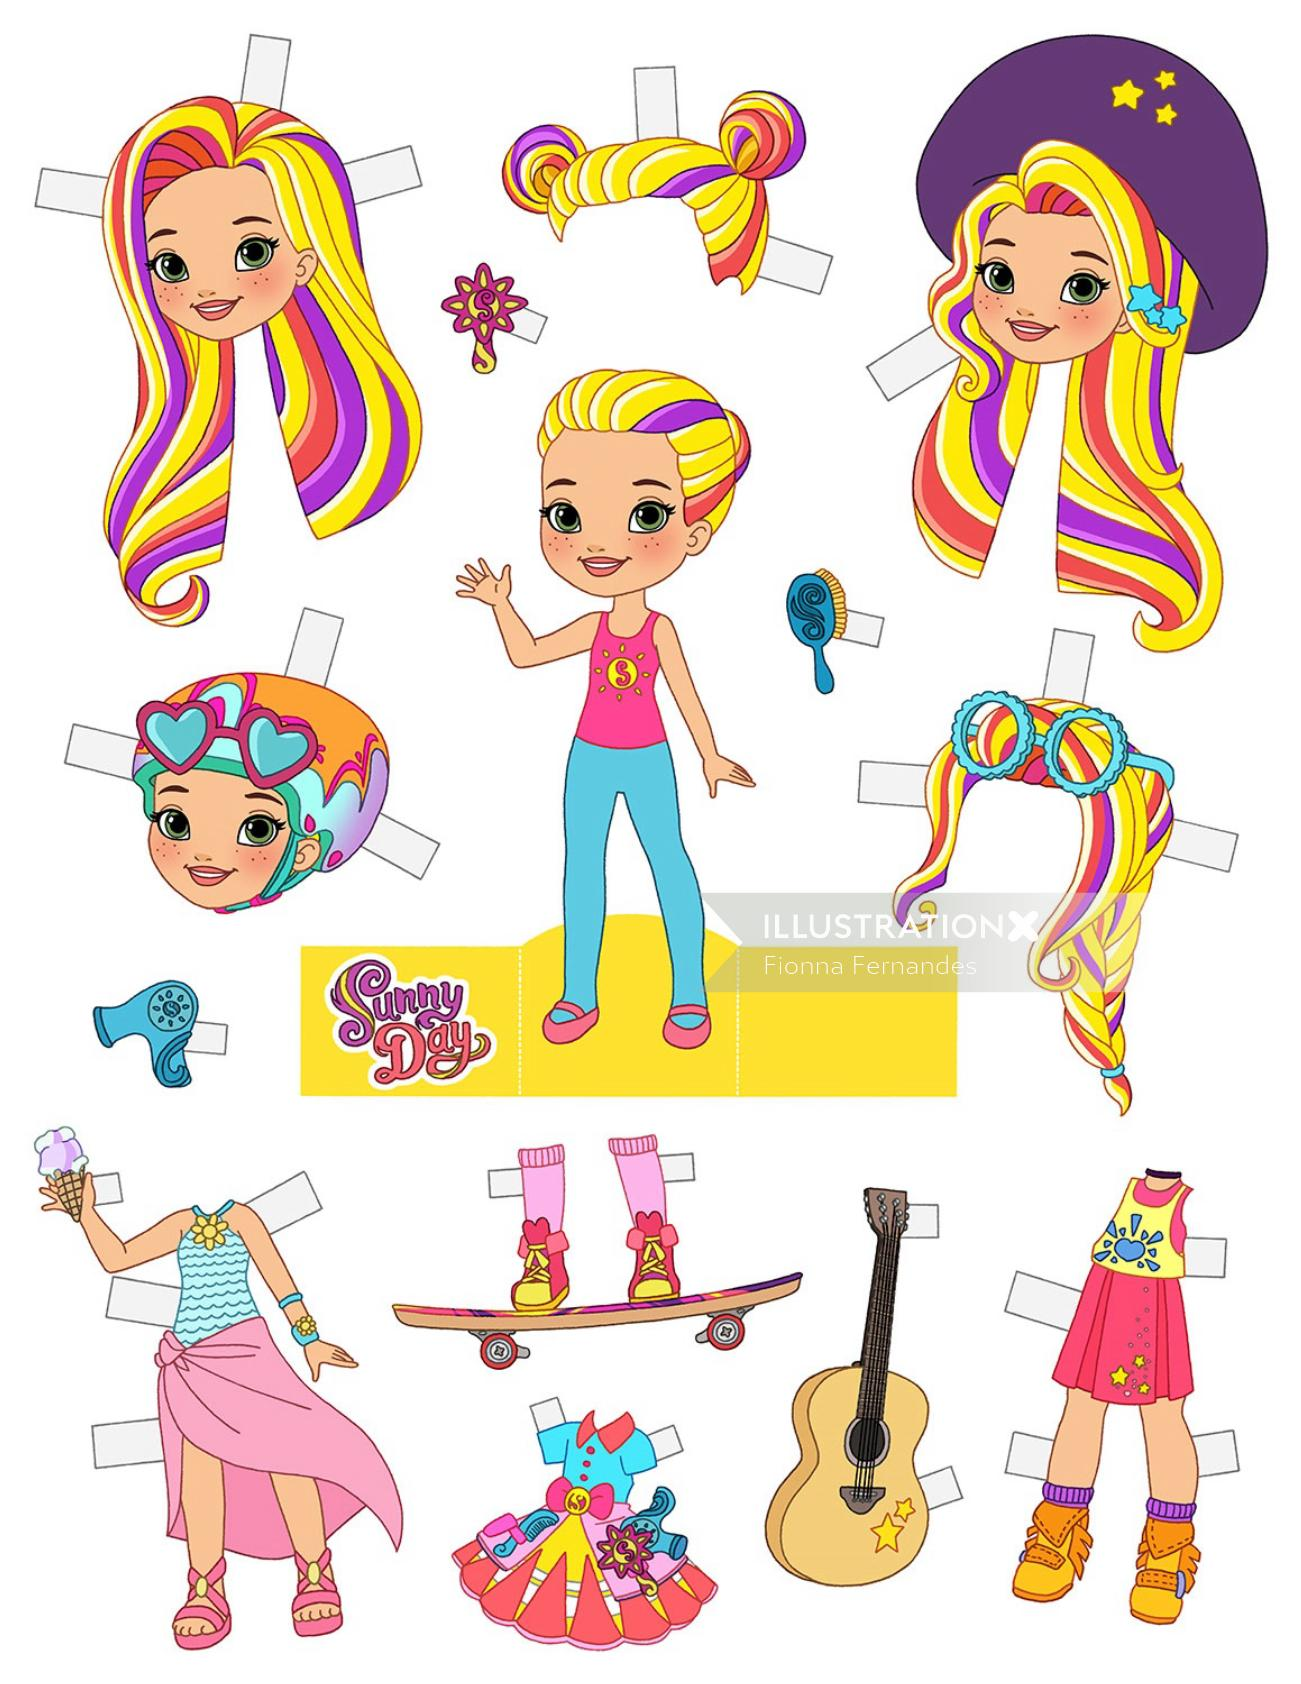 Cartoon characters Sunny Day Paper Doll for Nick Jr.